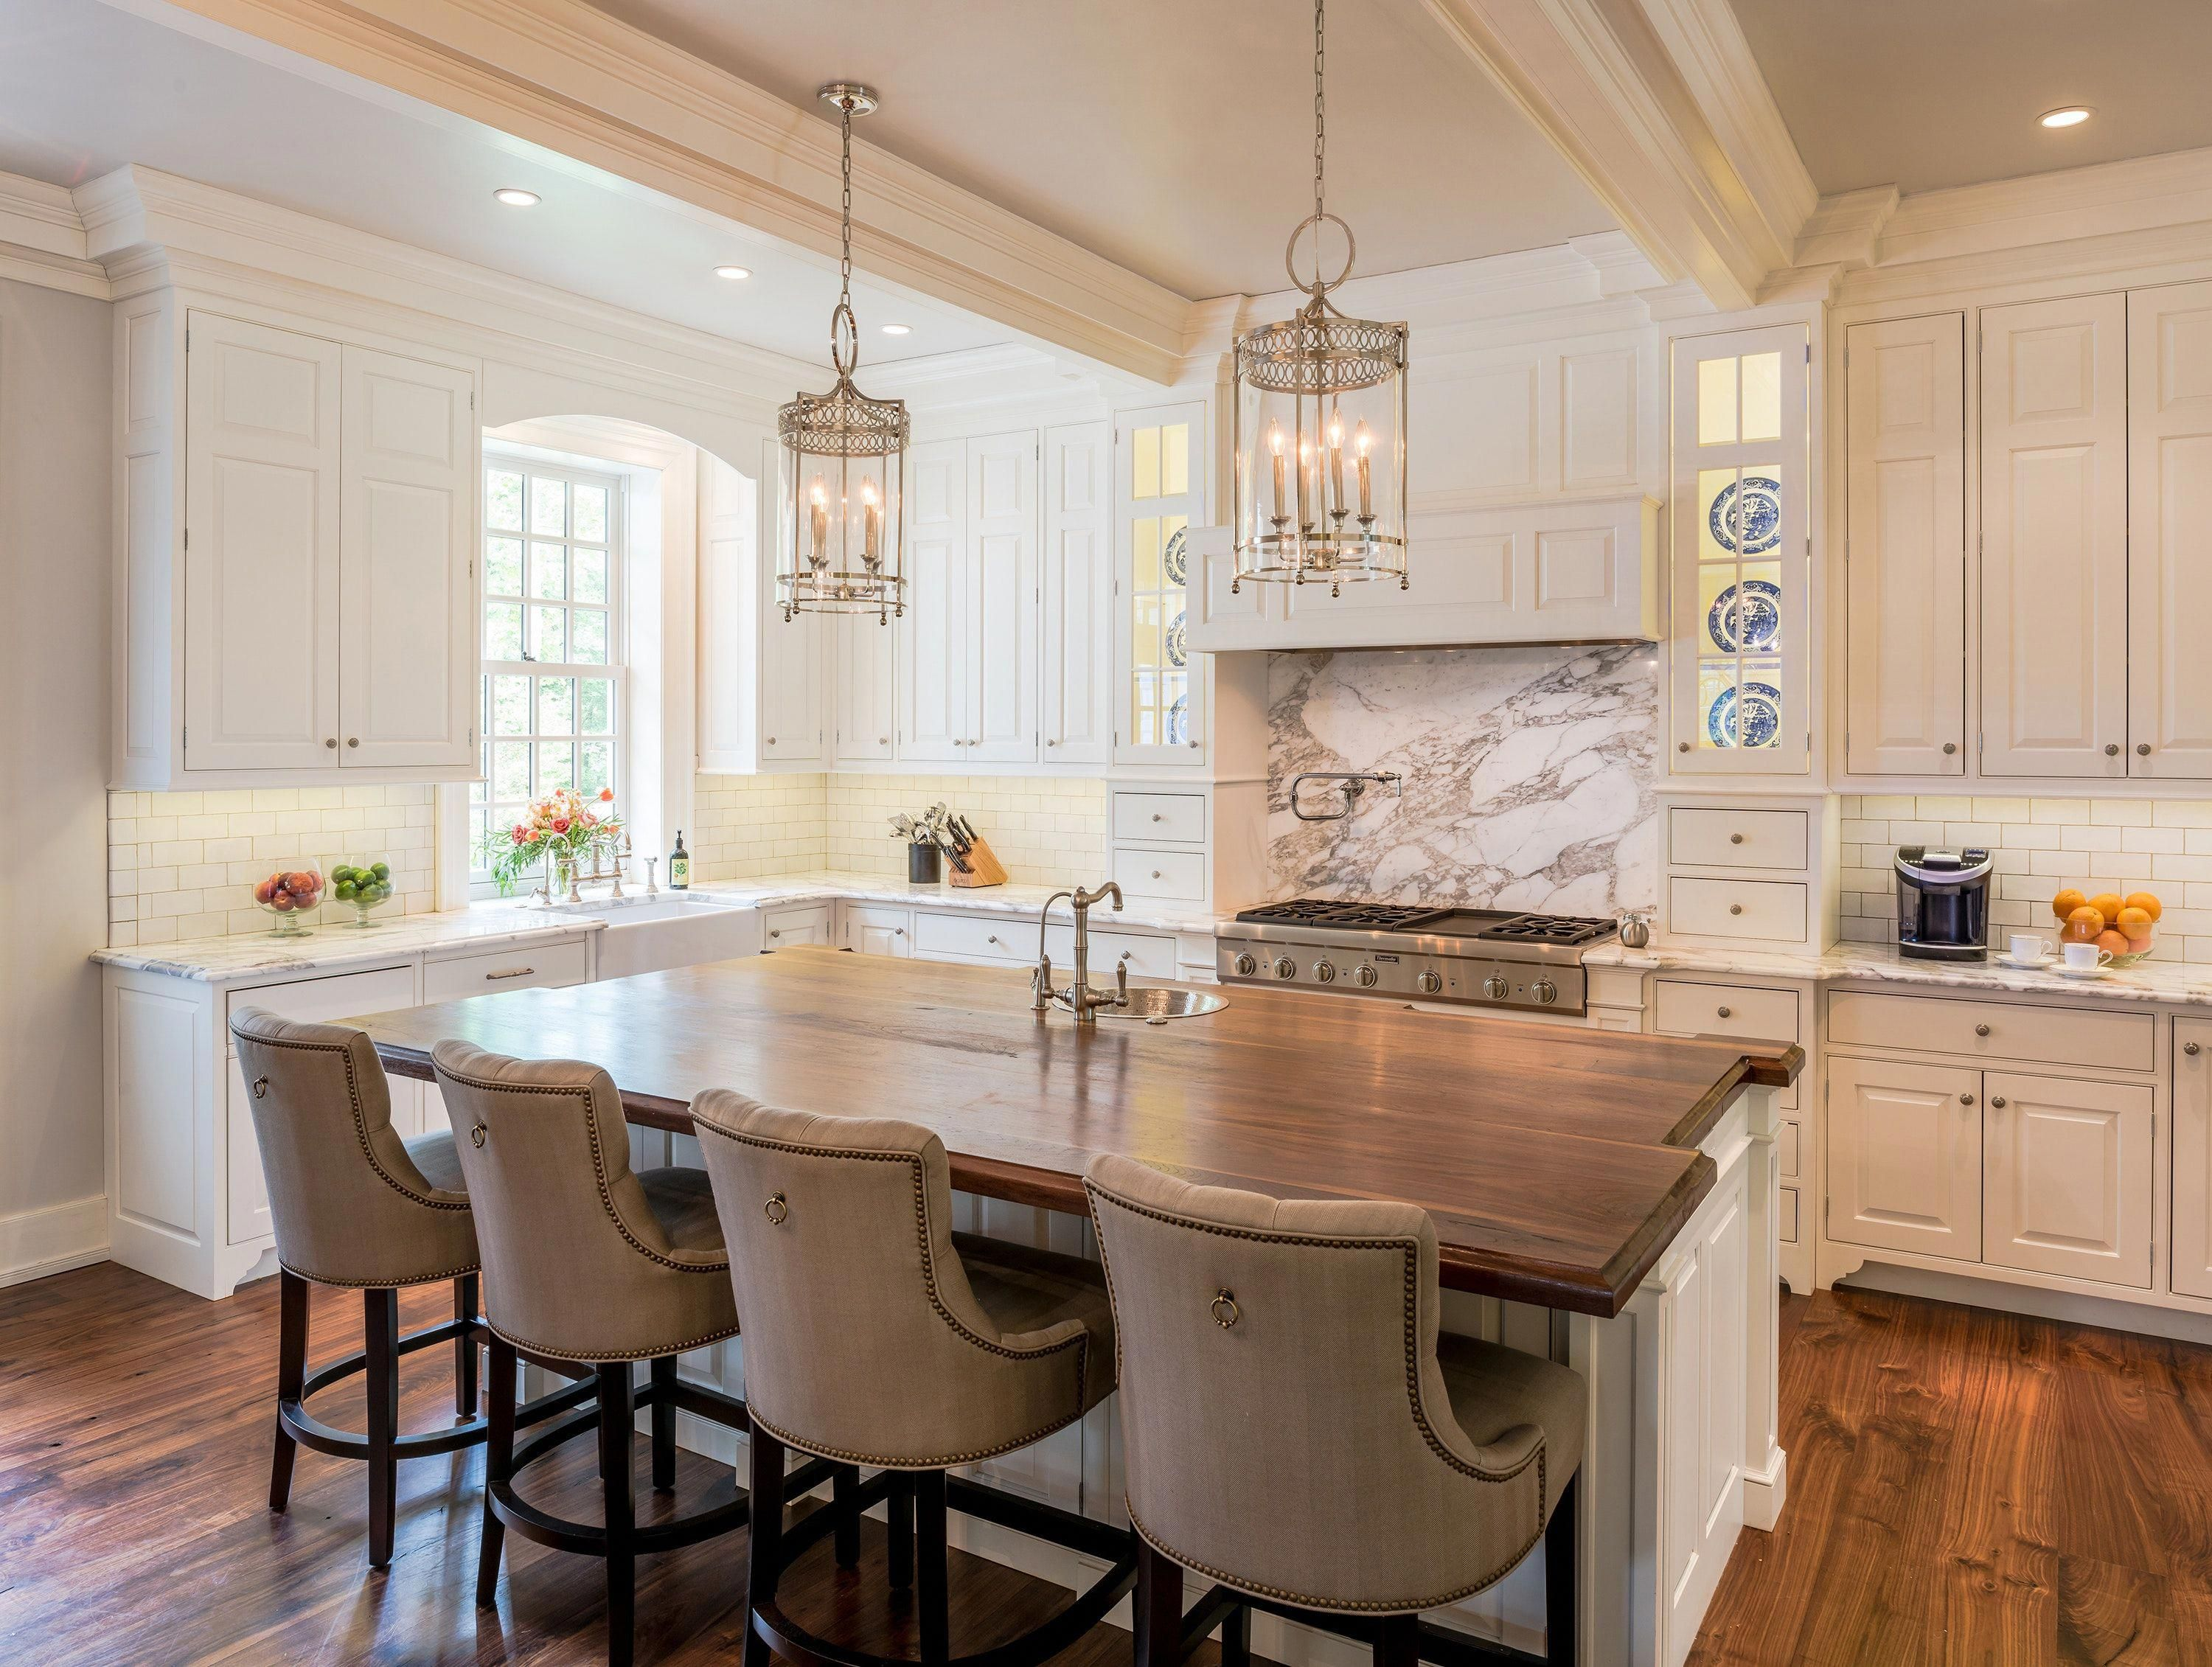 Colonial Revival Farmhouse Kitchen With Traditional Details In Horsham Pa Traditional Style Kitchen Design Traditional Kitchen Design Kitchen Cabinet Design